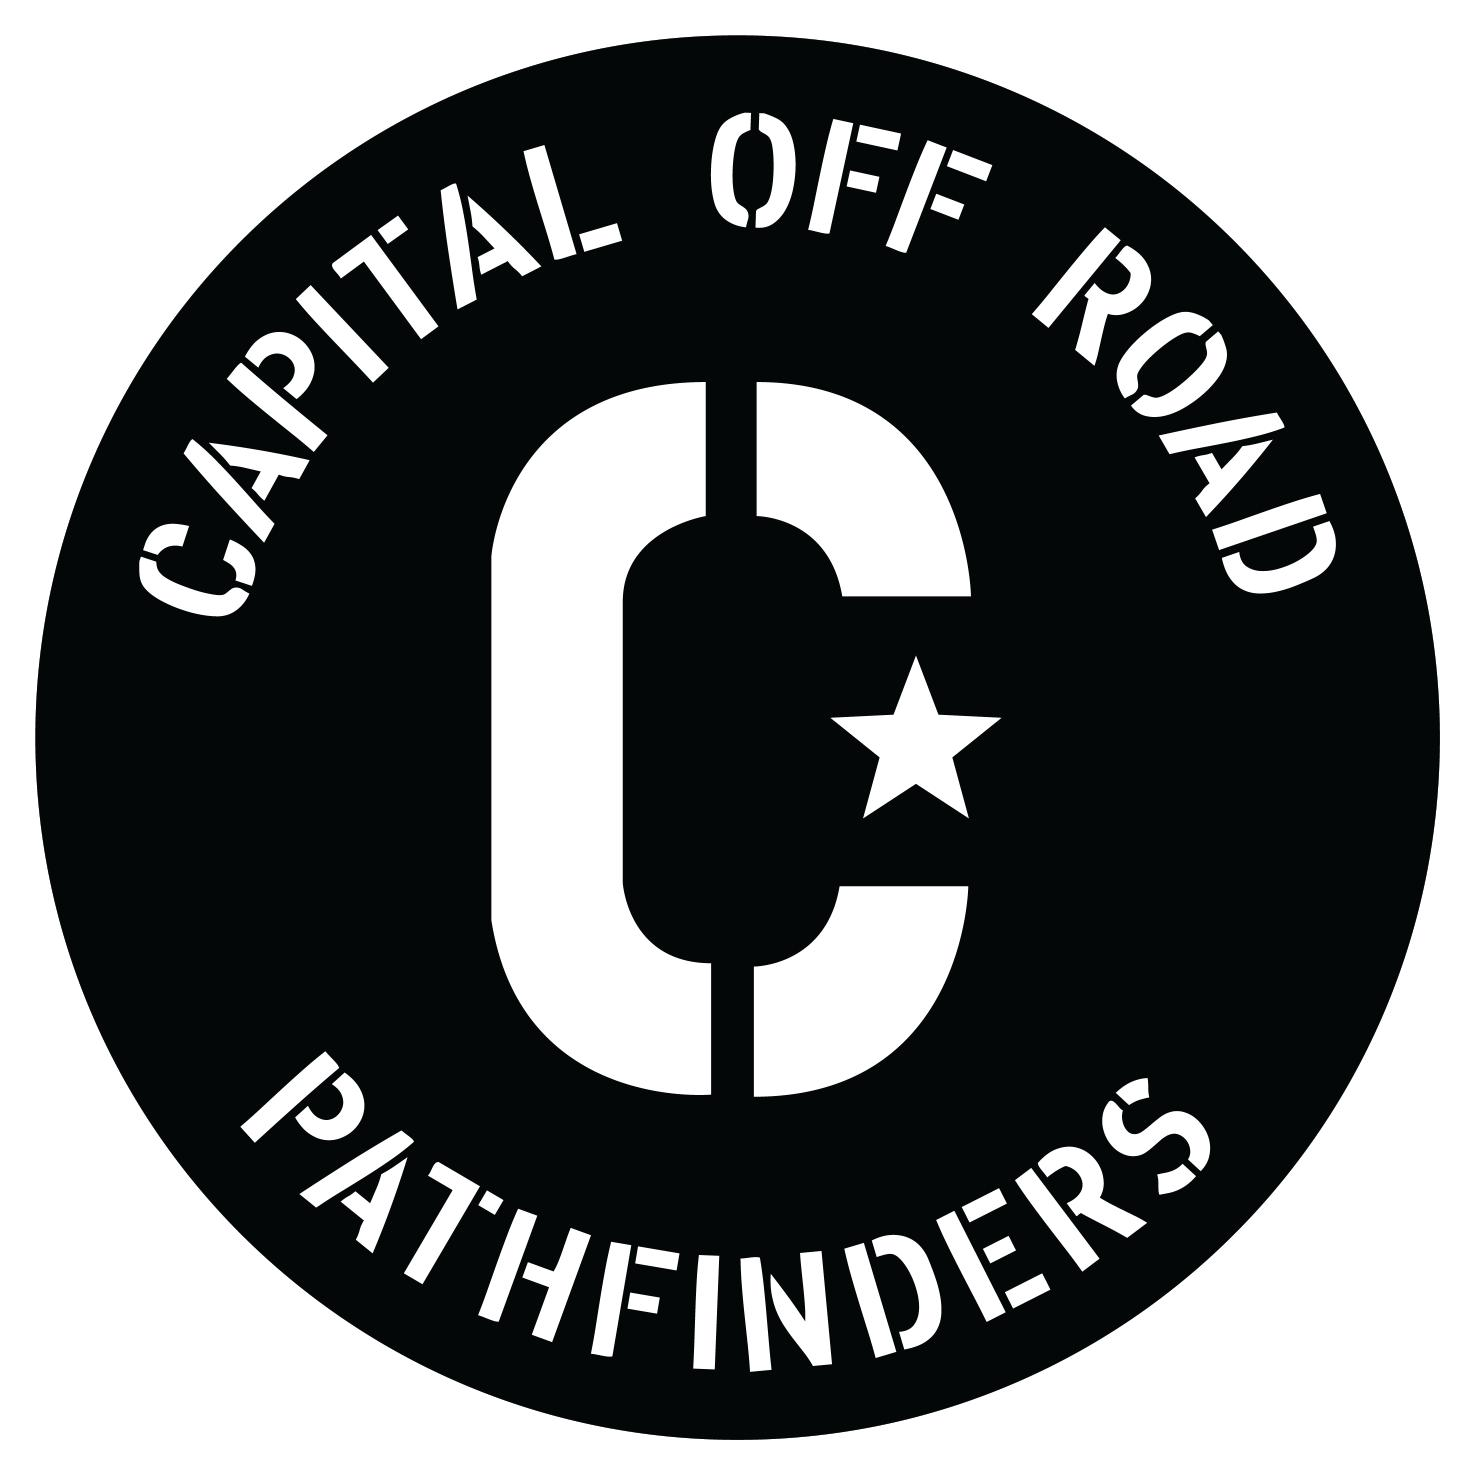 Capital Off Road Pathfinders, Inc. (local Chapter of International Mountain Bicycling Association) logo